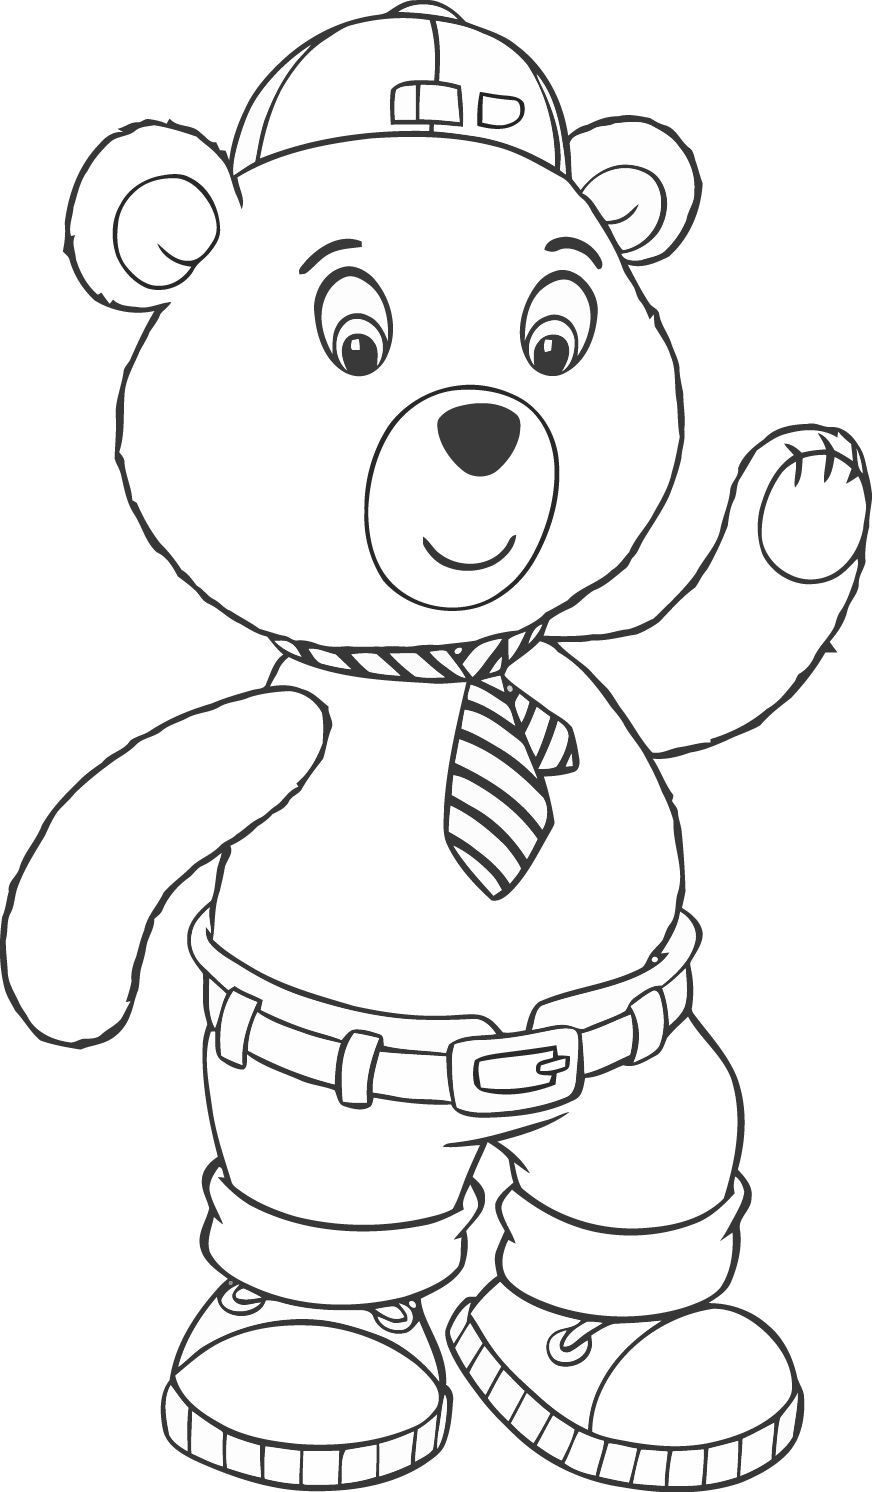 awesome noddy 99 mcoloring coloring page   riscos   Pinterest